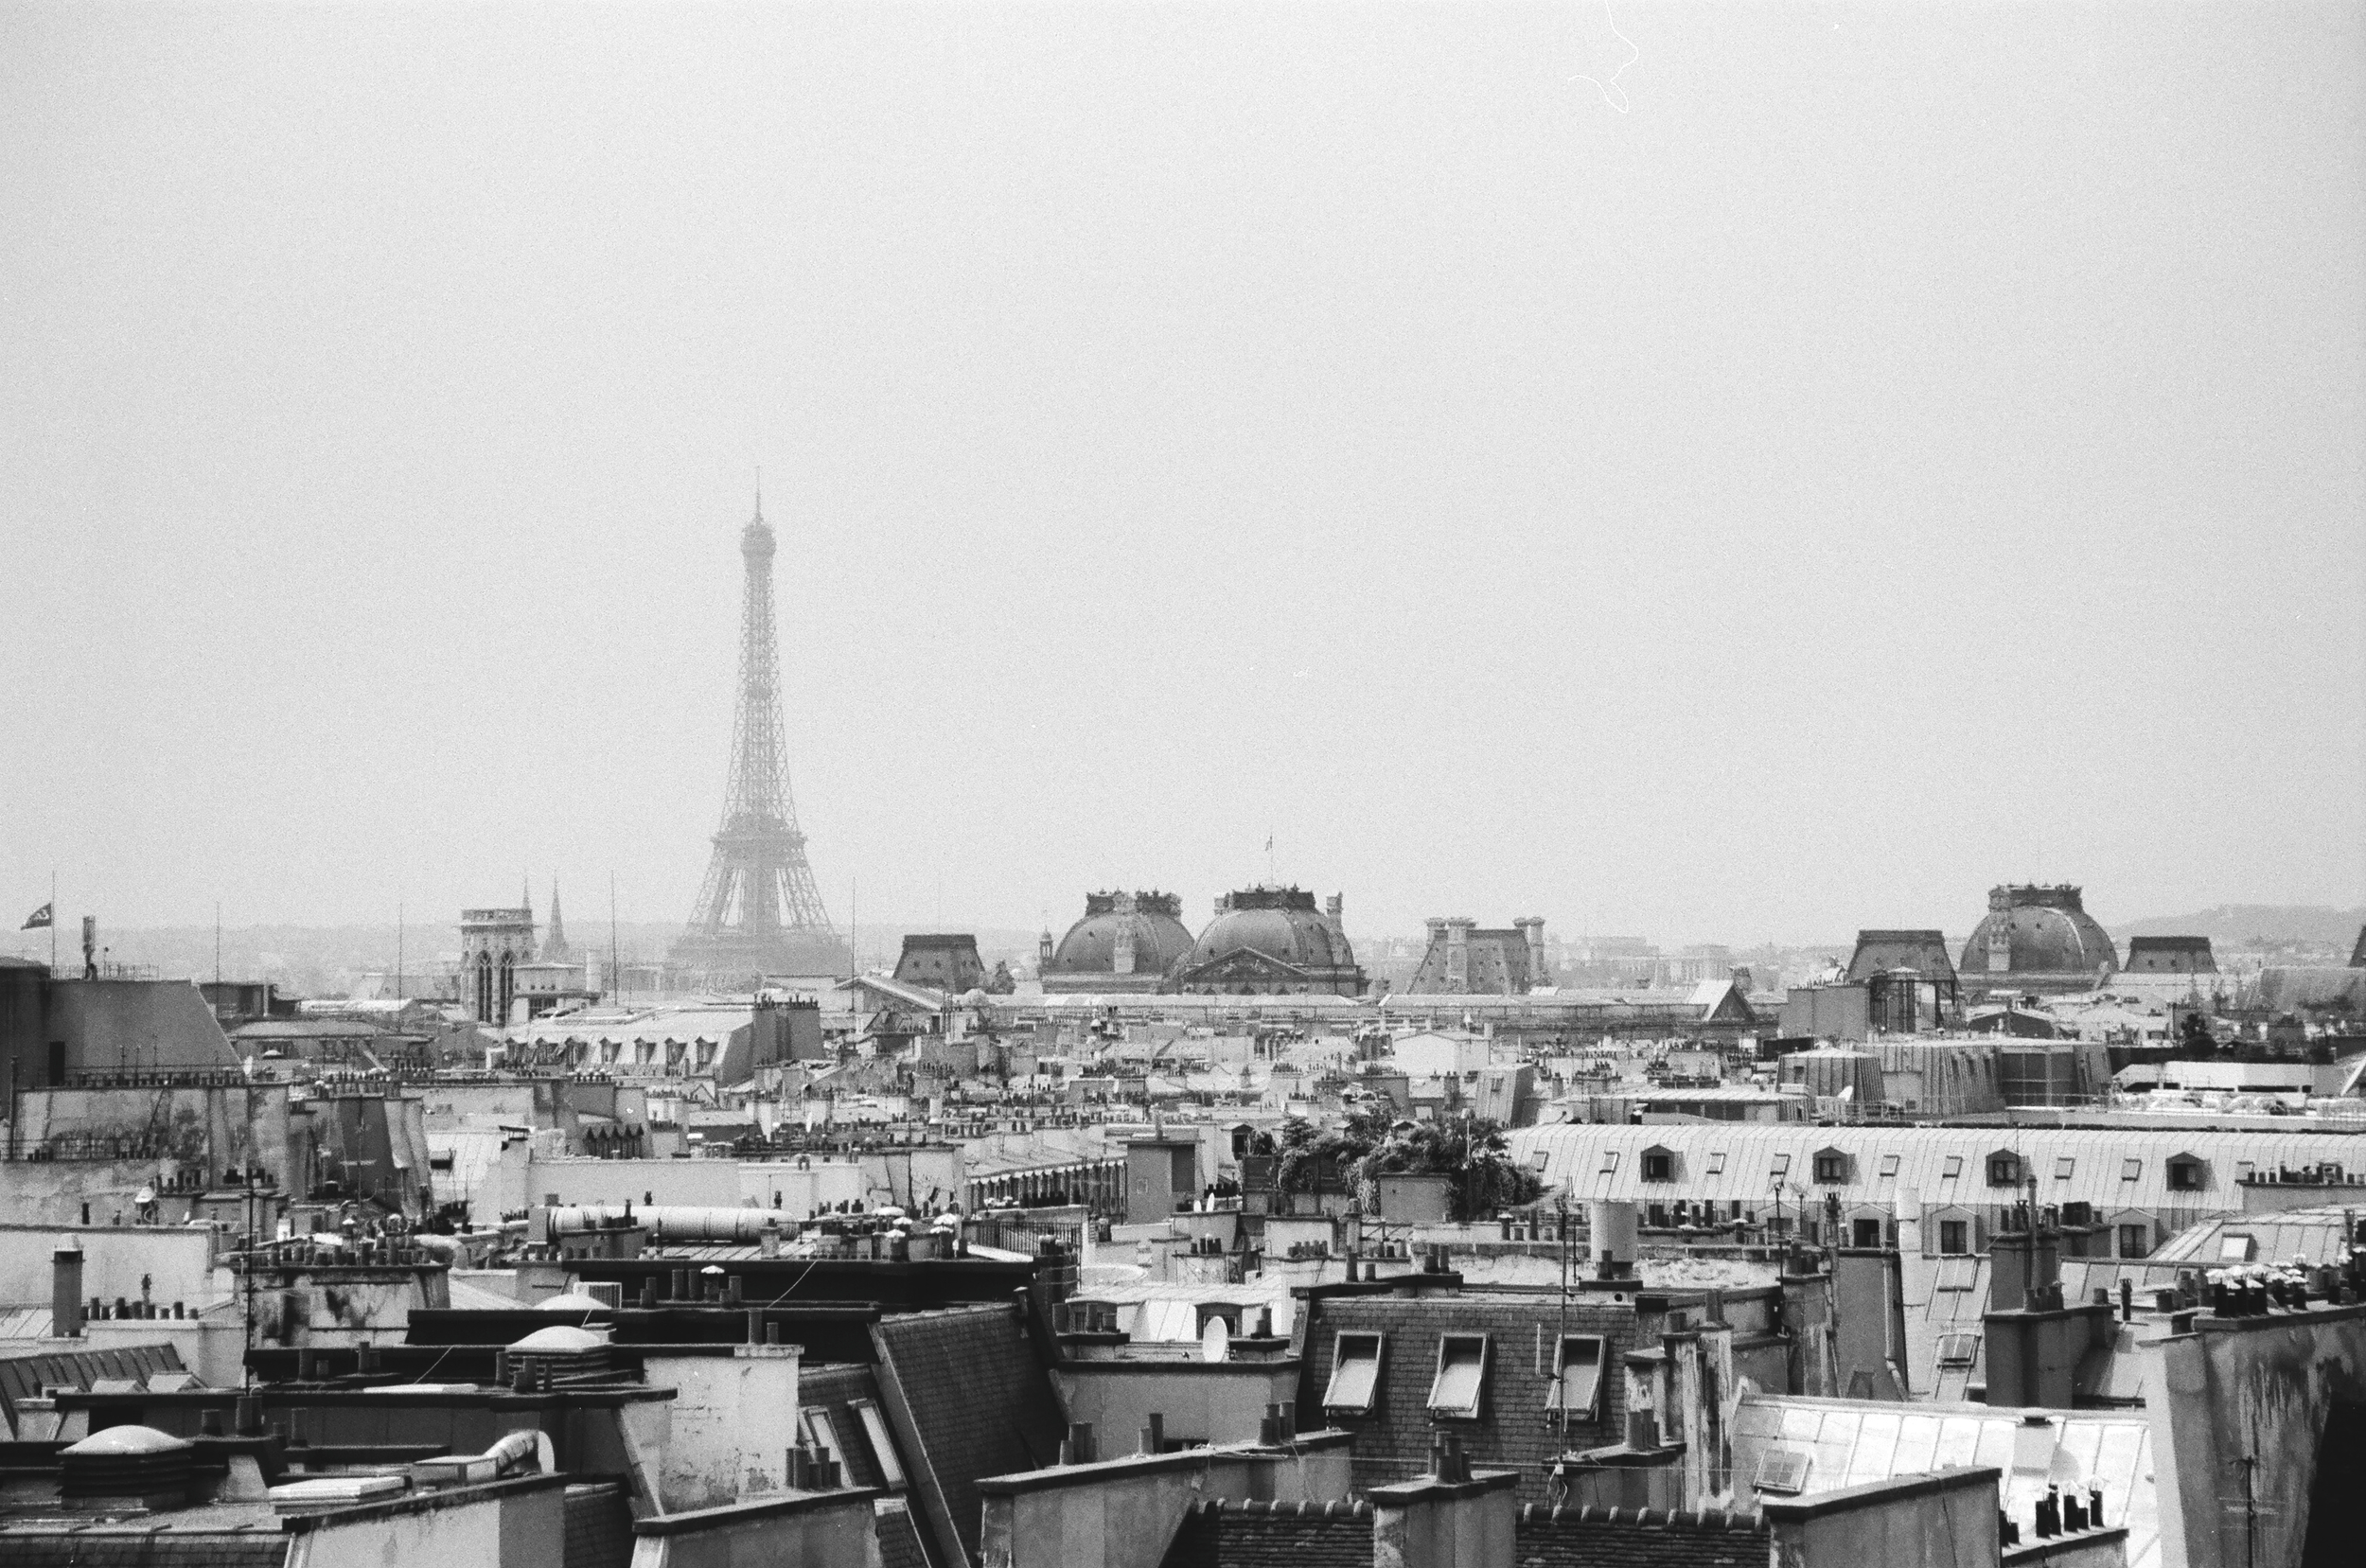 Paris - France B&W Image 7.jpg